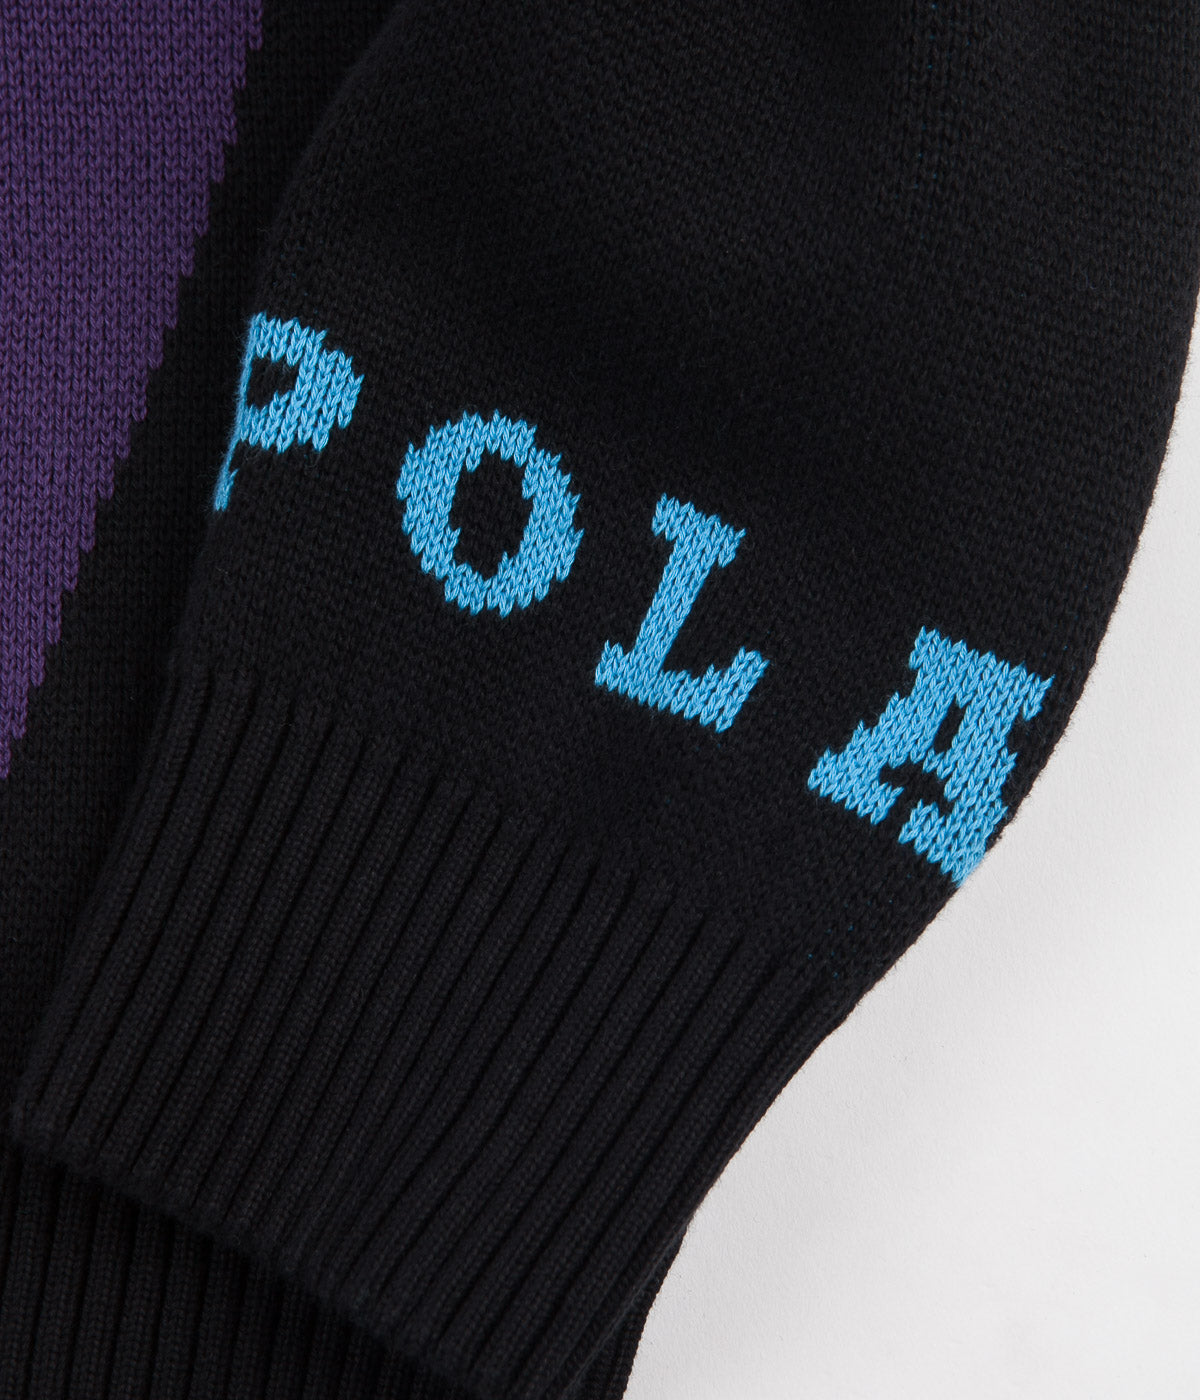 Polar Art Knit Sweatshirt - Selfie / Black